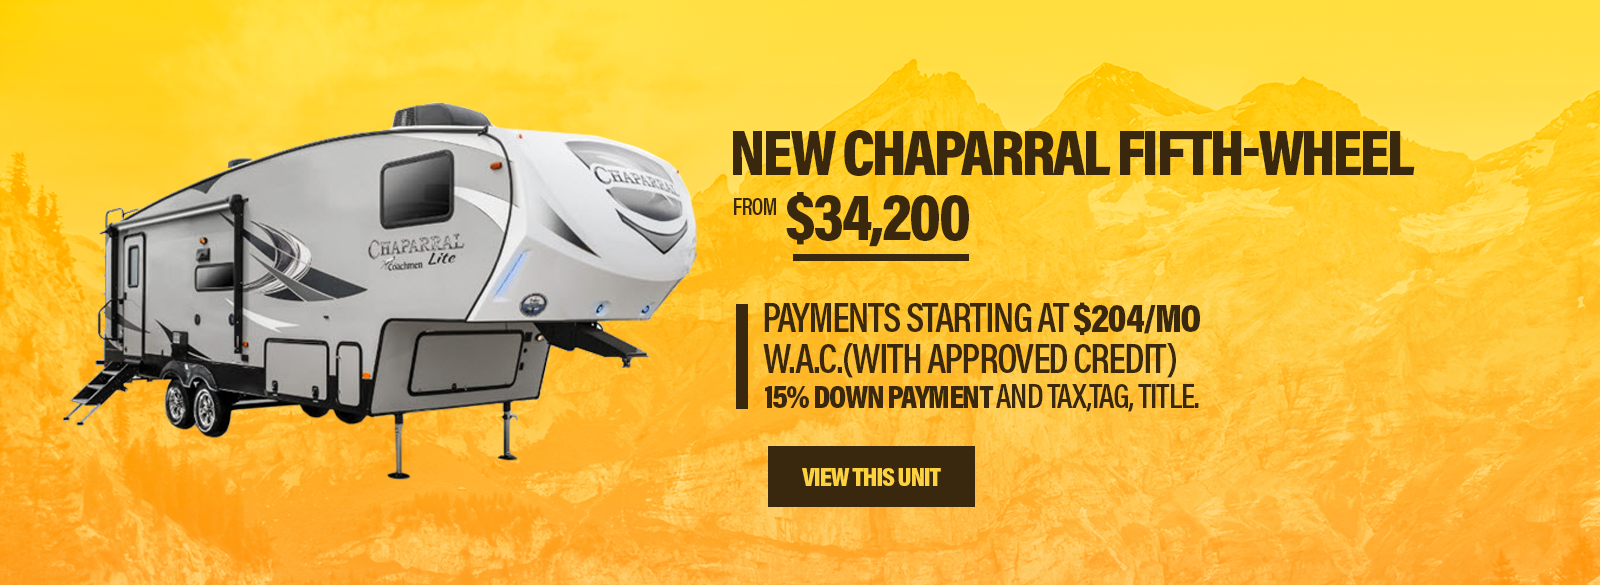 TriAmRV_cHAPARRAL295bh_HomepageBanner_April19.png